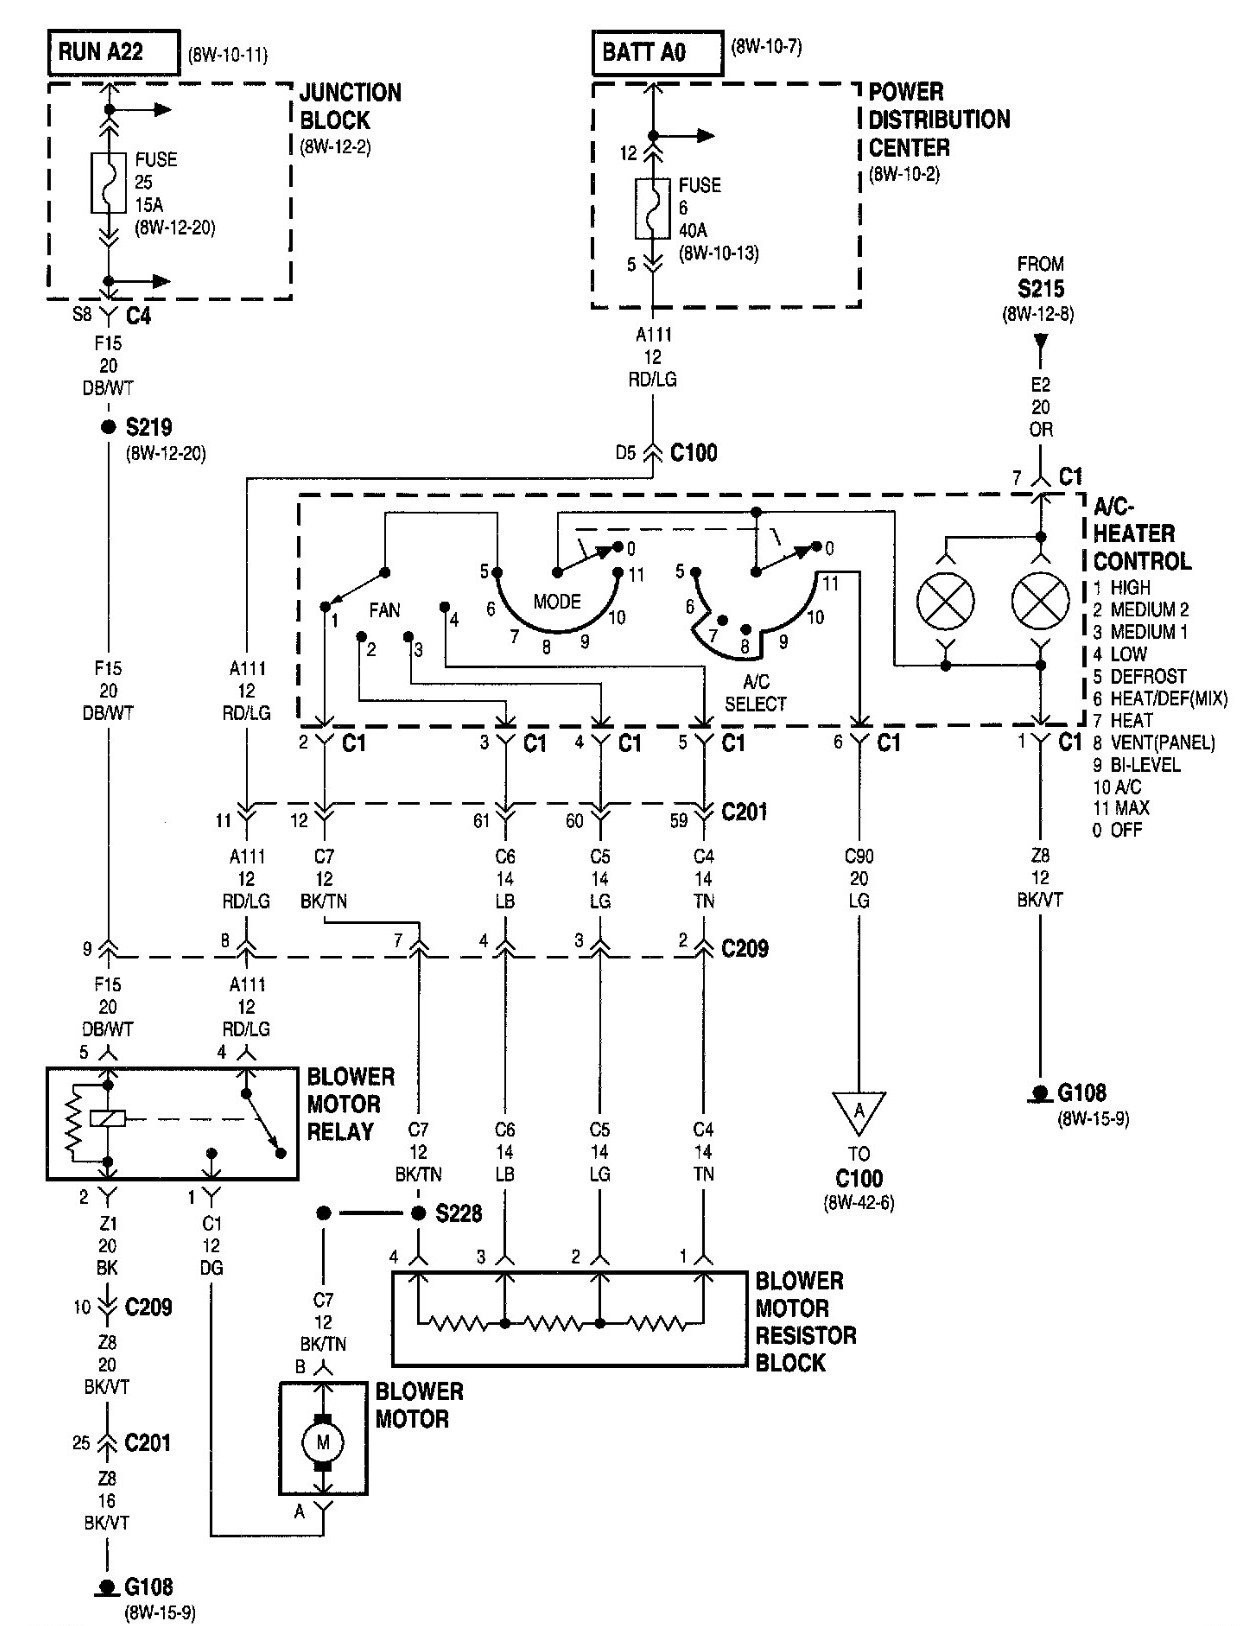 Jeep Grand Cherokee Ignition Wiring Diagram Valid 2001 Jeep Grand Cherokee Distributor Wiring Diagram Save 00 Jeep